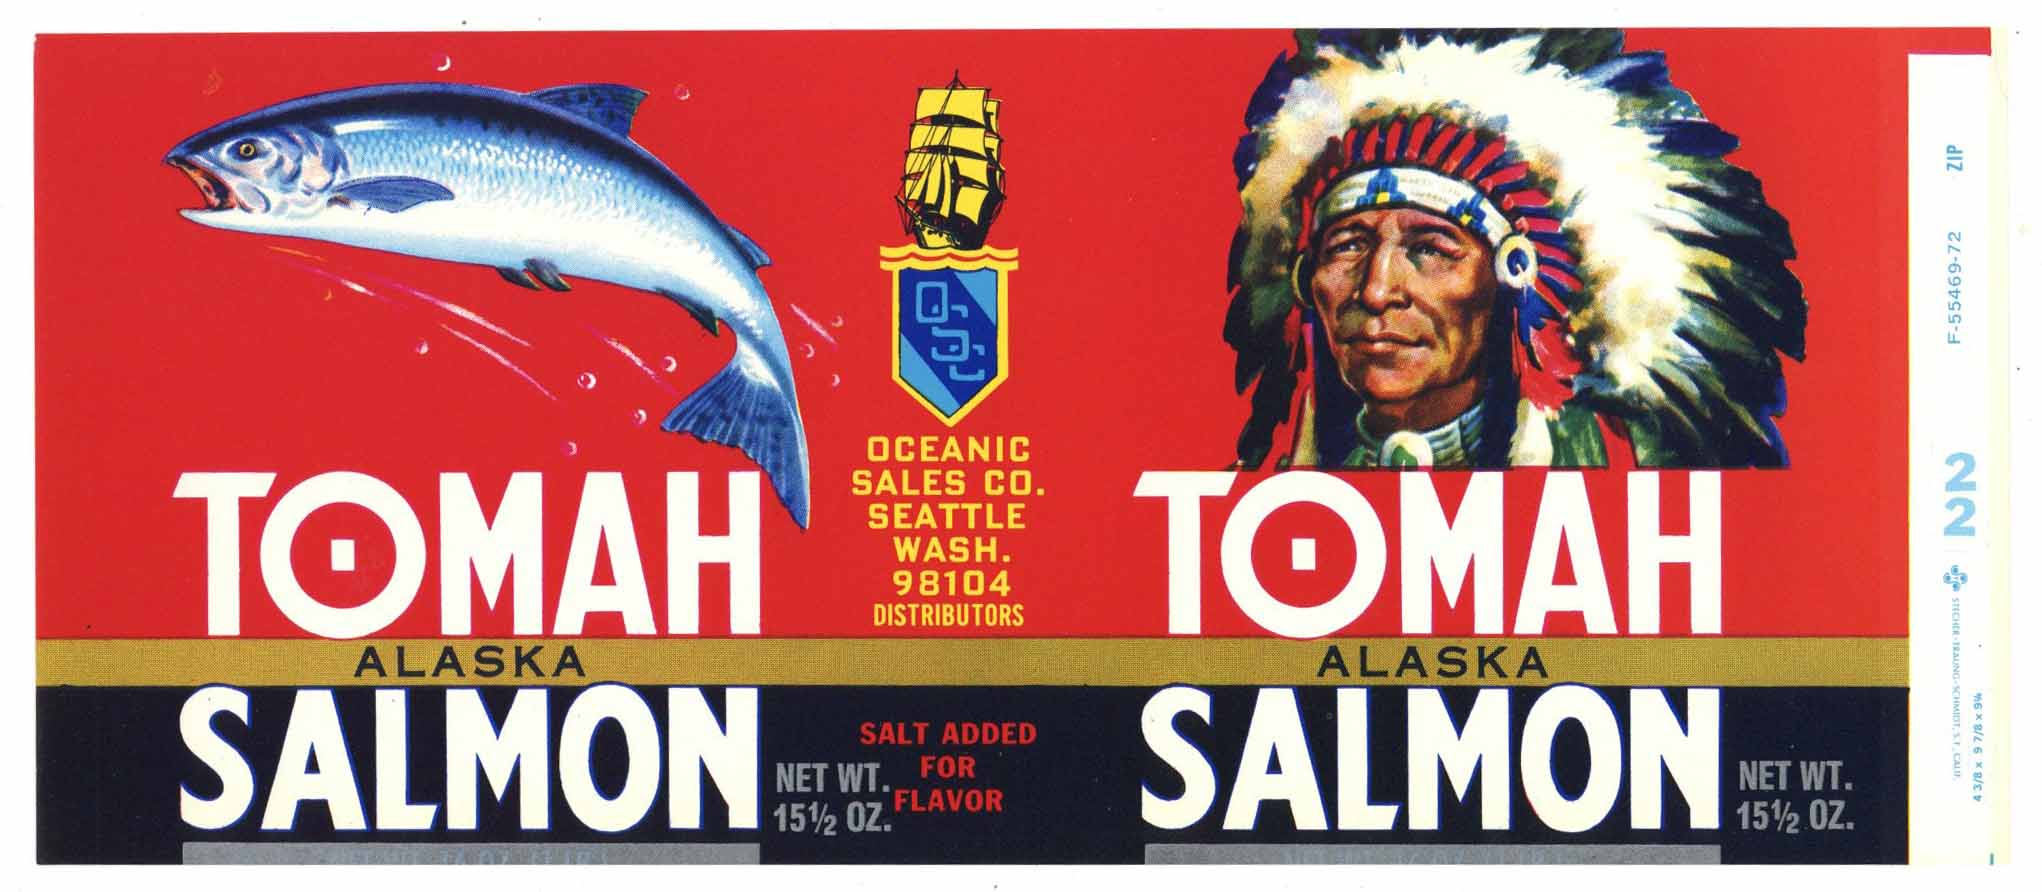 Tomah Brand Vintage Seattle Washington Salmon Can Label